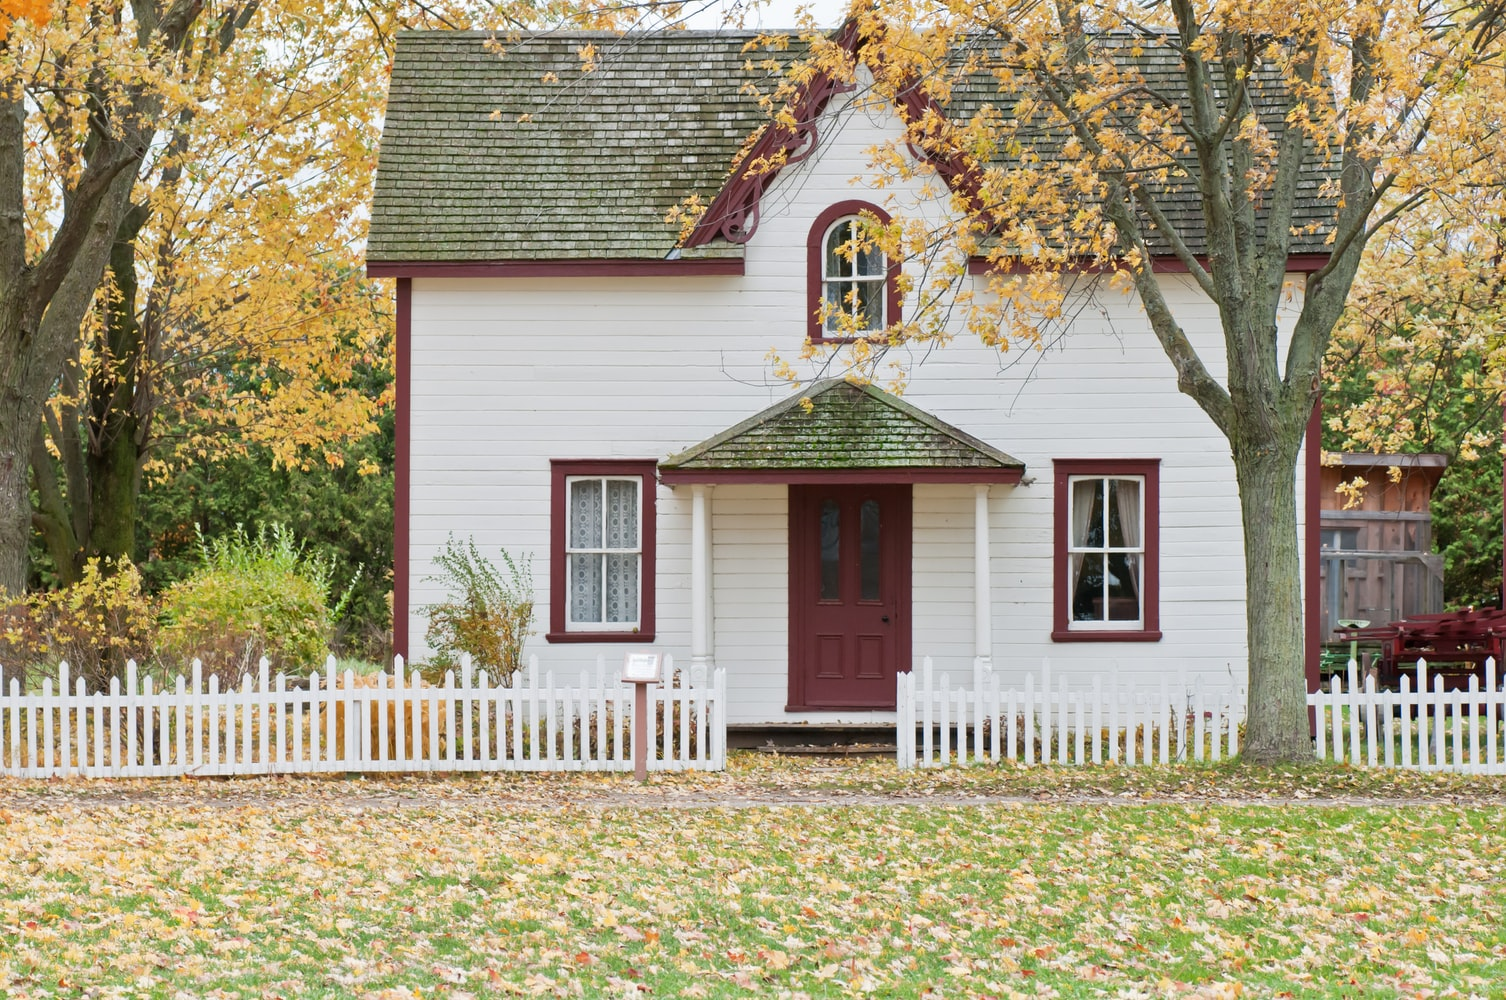 Small White Home With Red Door and White Picket Fence